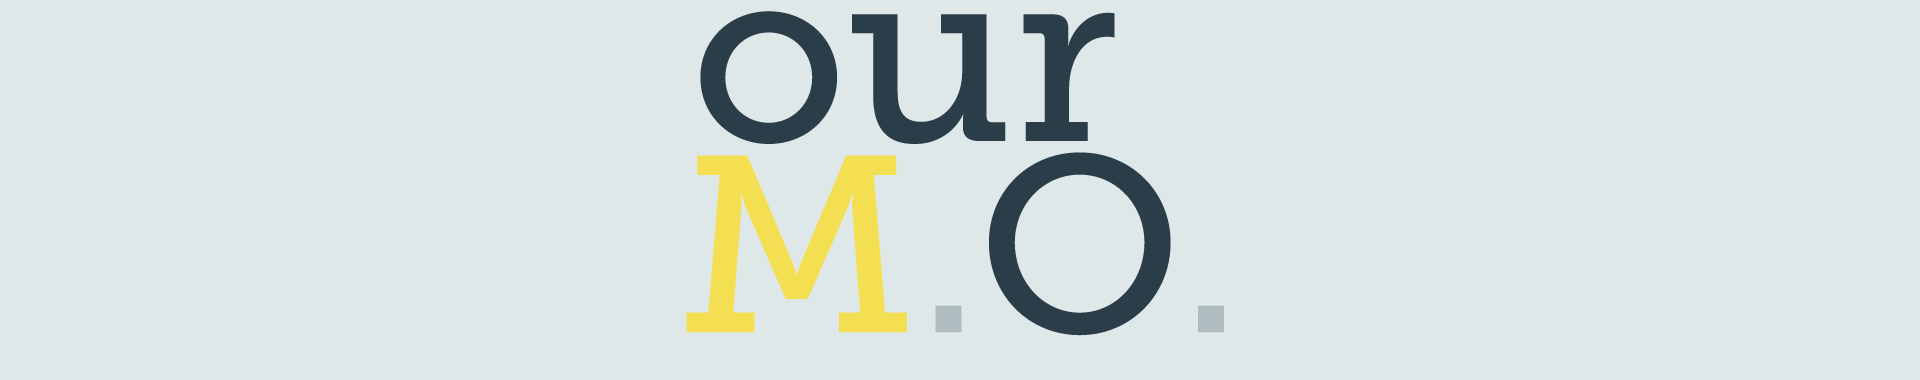 ourMO.png